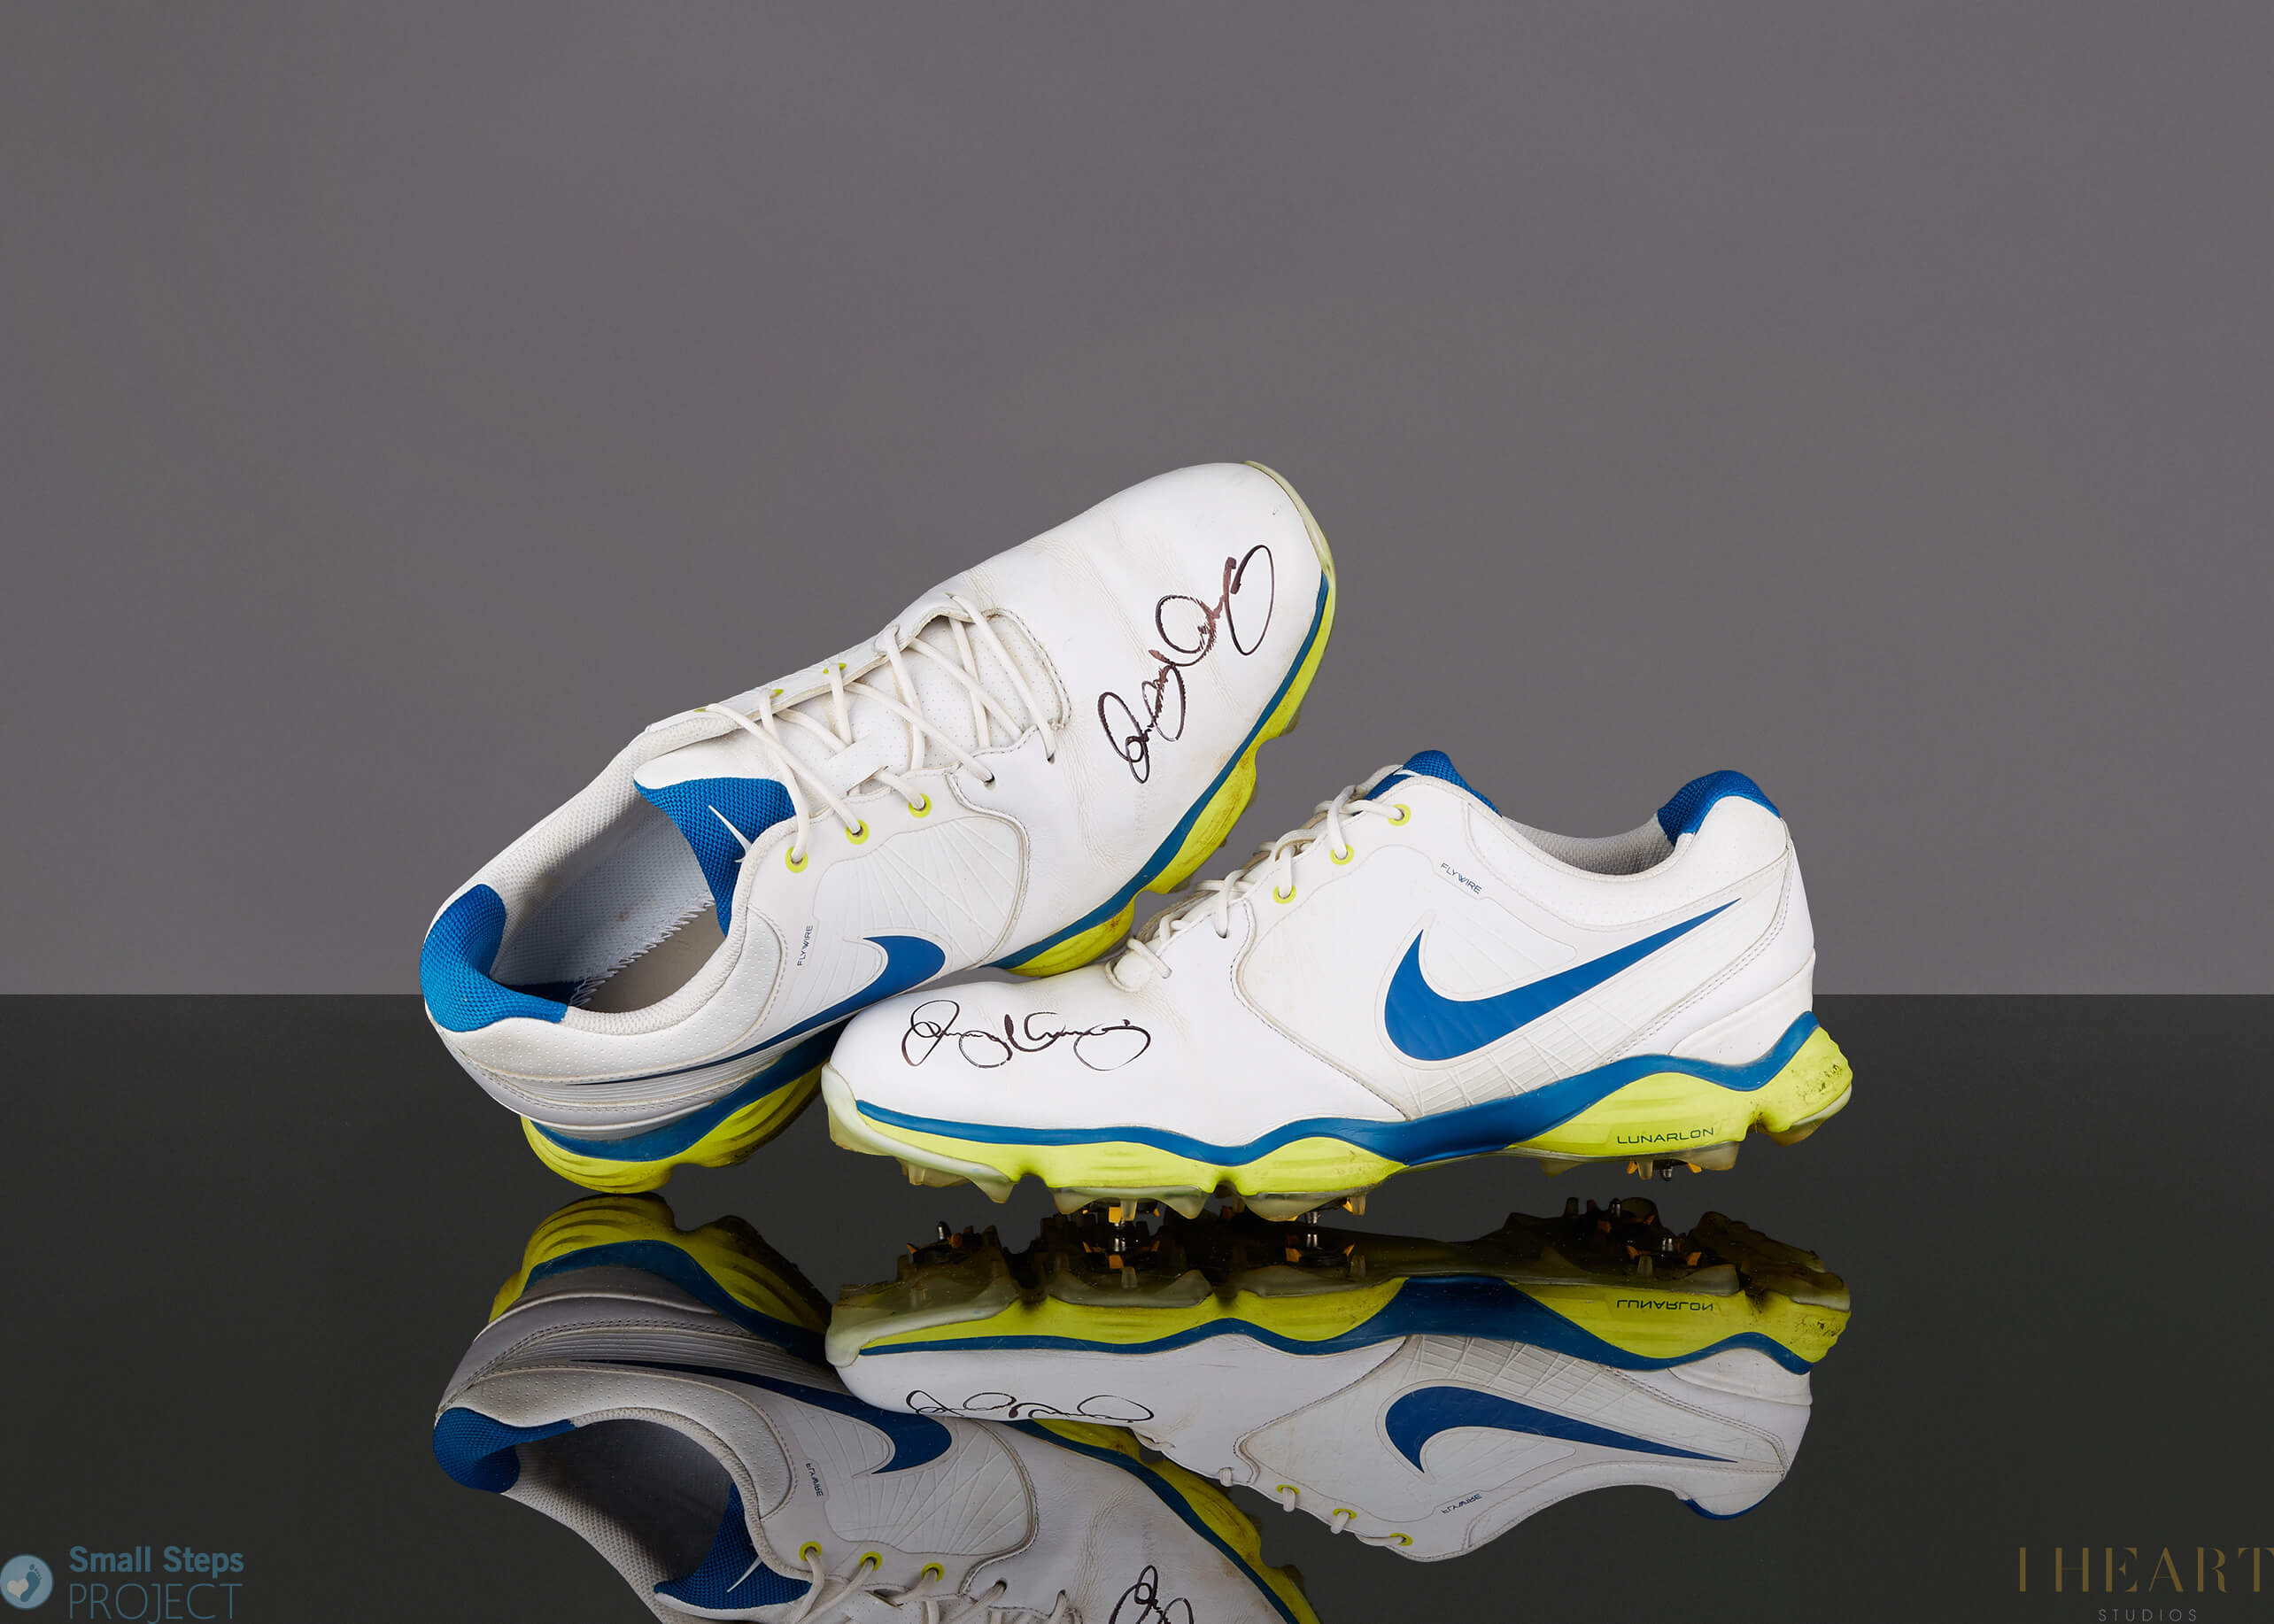 rory mcilroy shoes